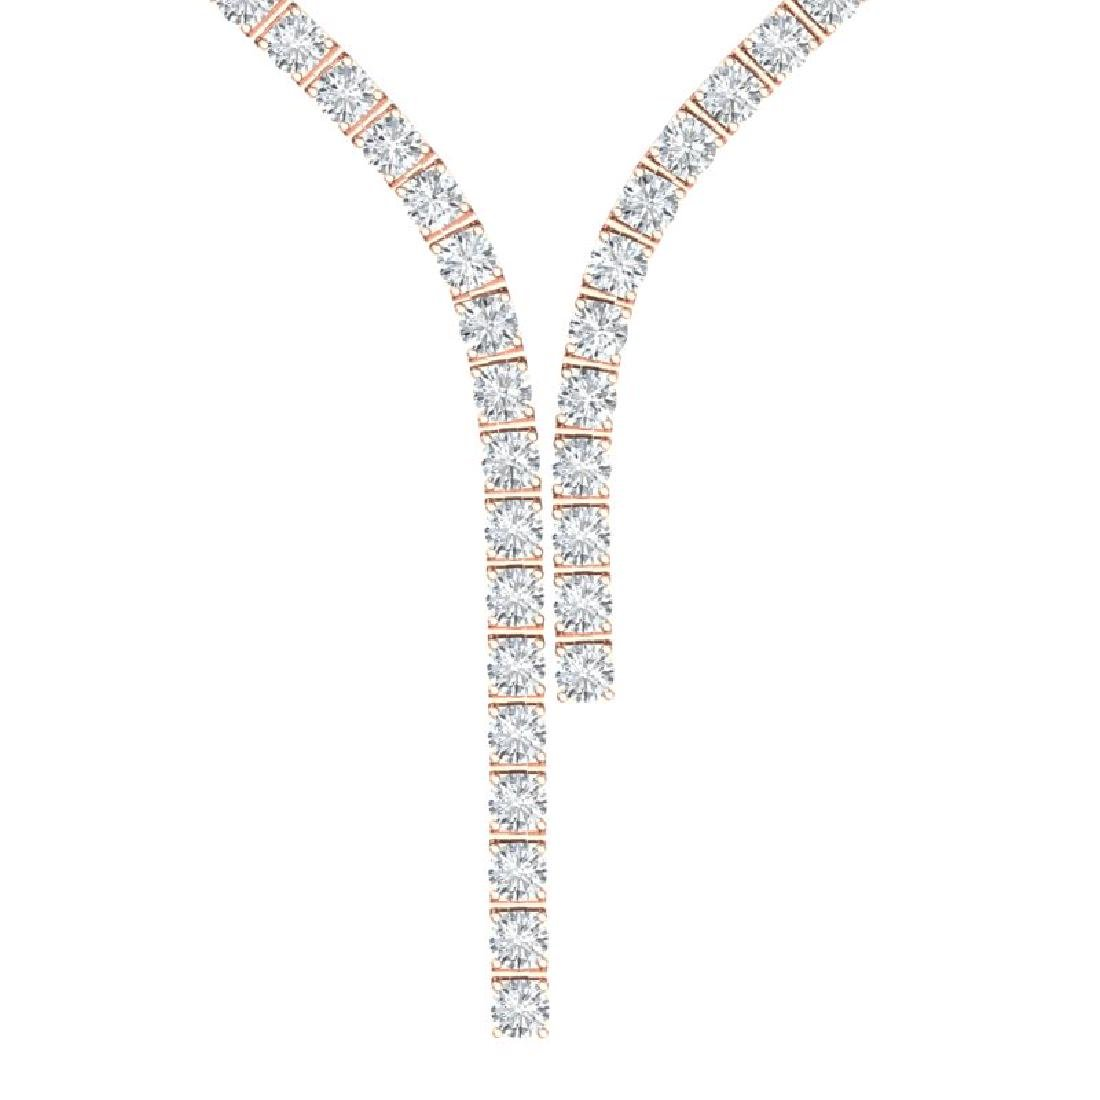 25 CTW Certified VS/SI Diamond Necklace 18K Rose Gold